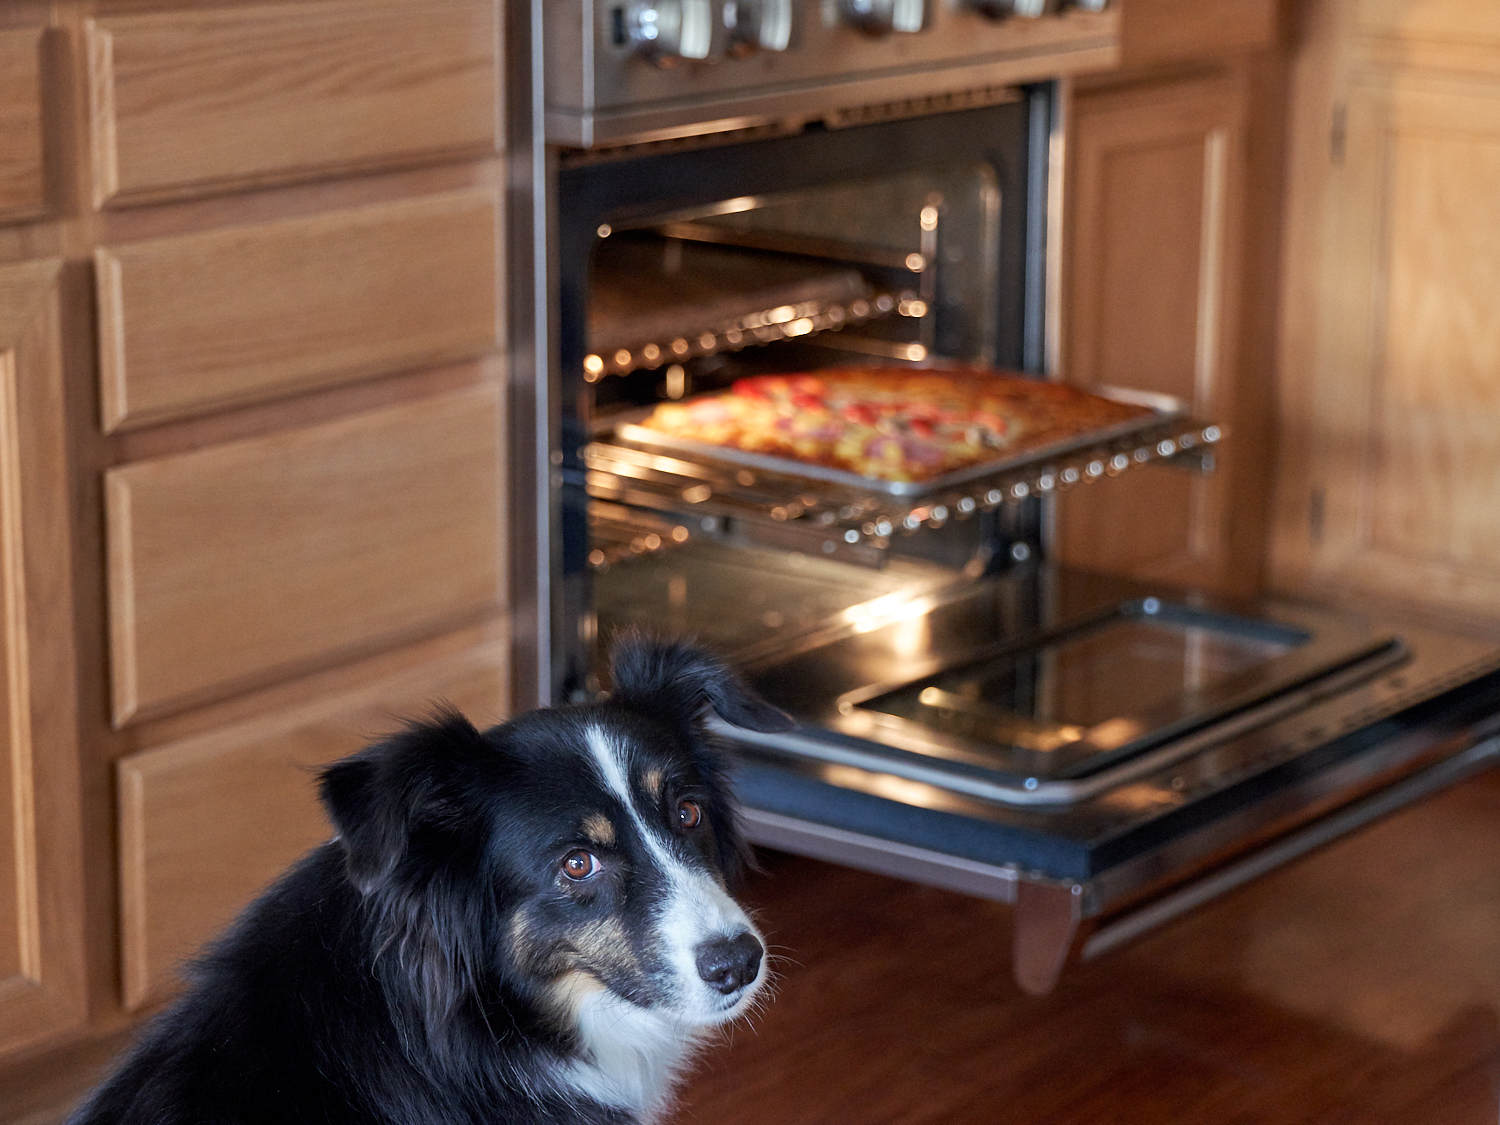 Riley wants to know why is it taking so long to get that out of the oven!